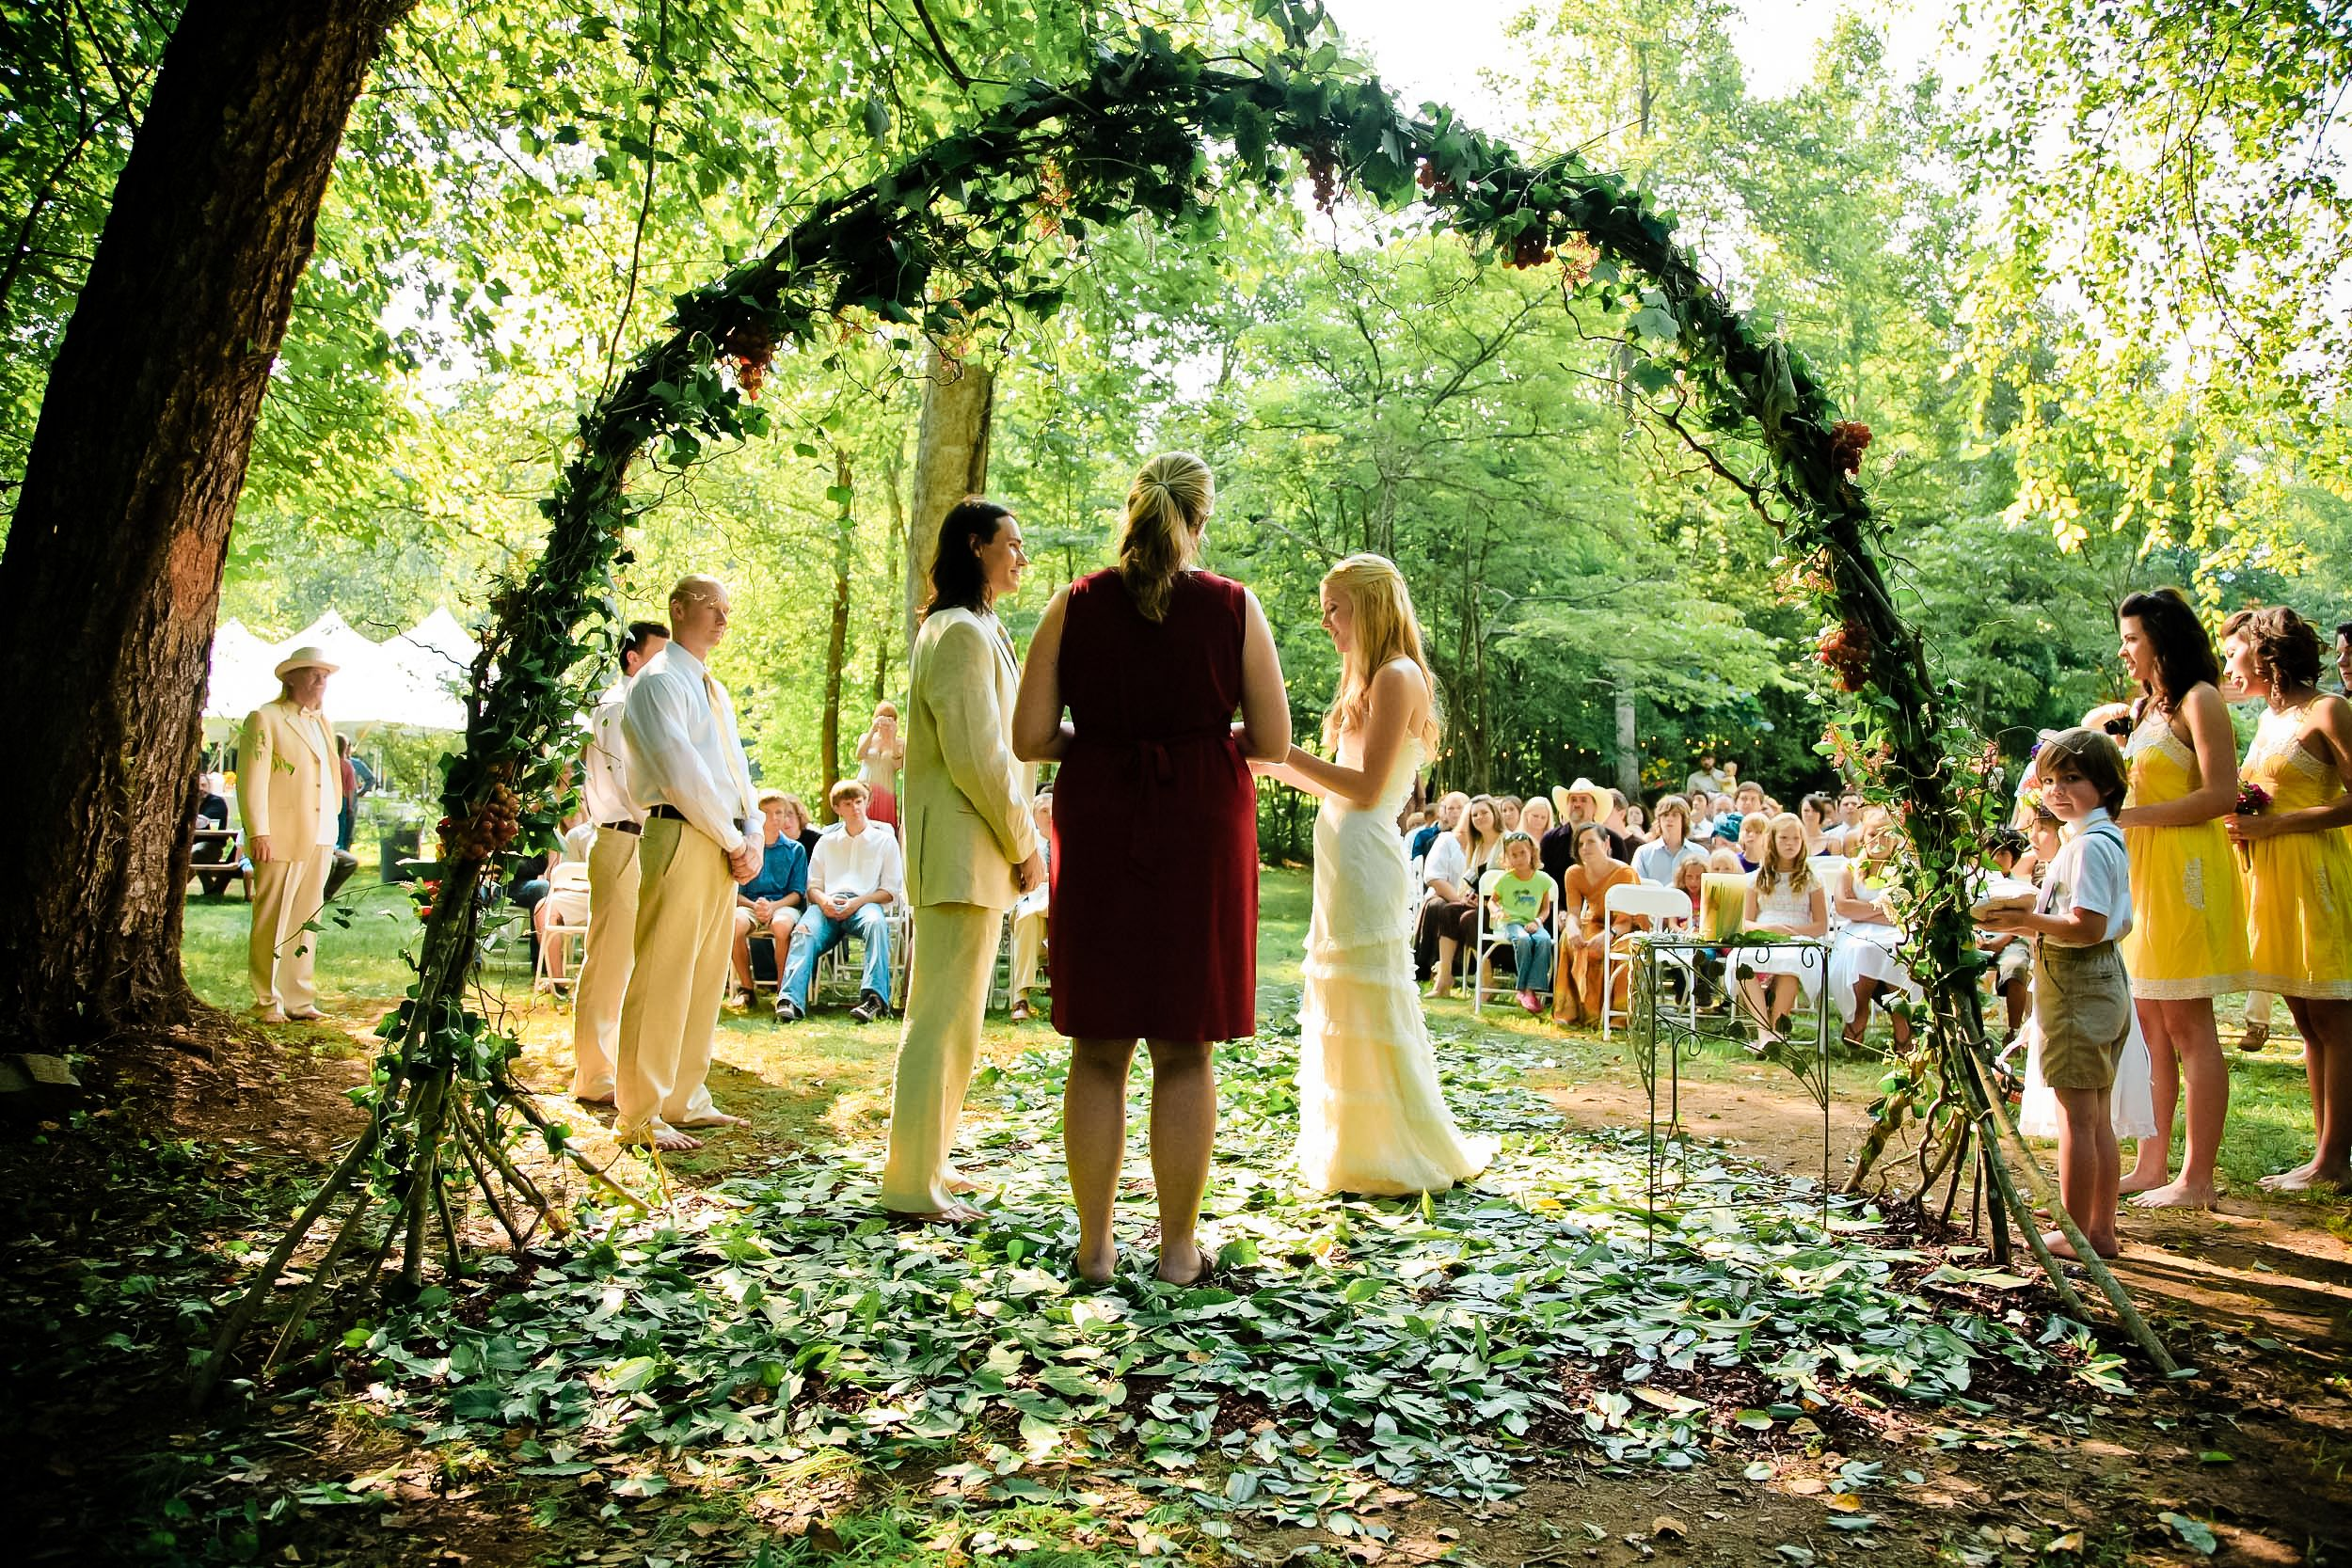 Outdoor Wedding At Blue Creek Cabins In Helen, GA